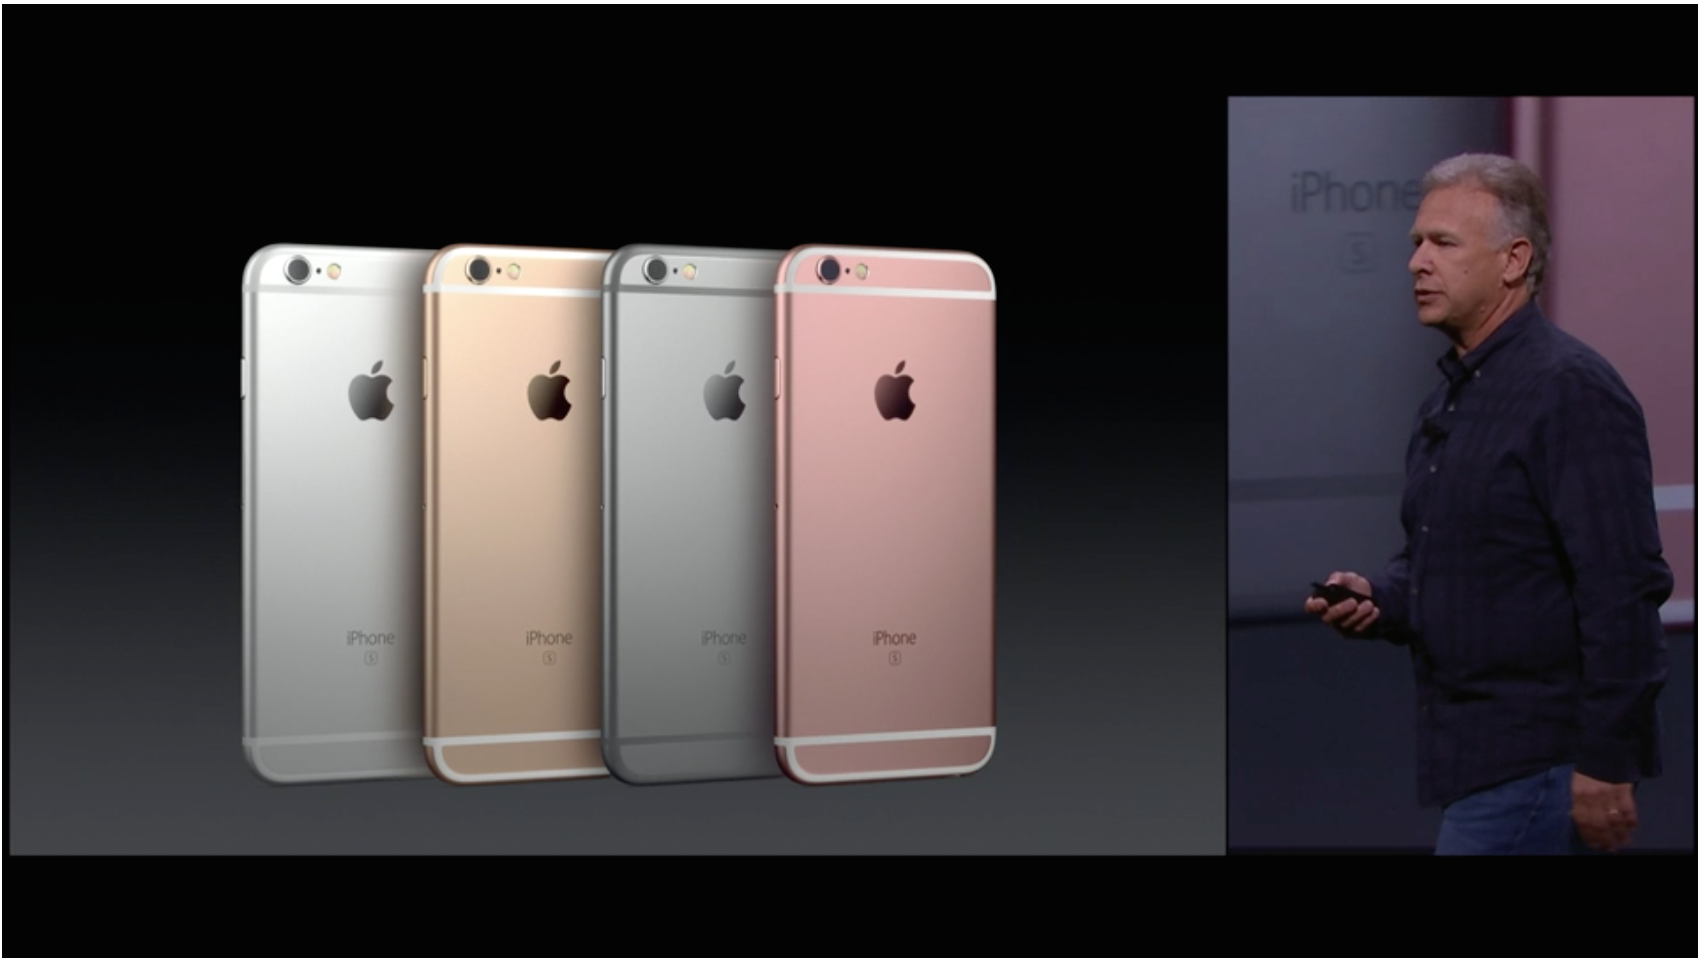 Silver, Gold, Space Grey, and all new Rose Gold for the latest iPhone 6s series.